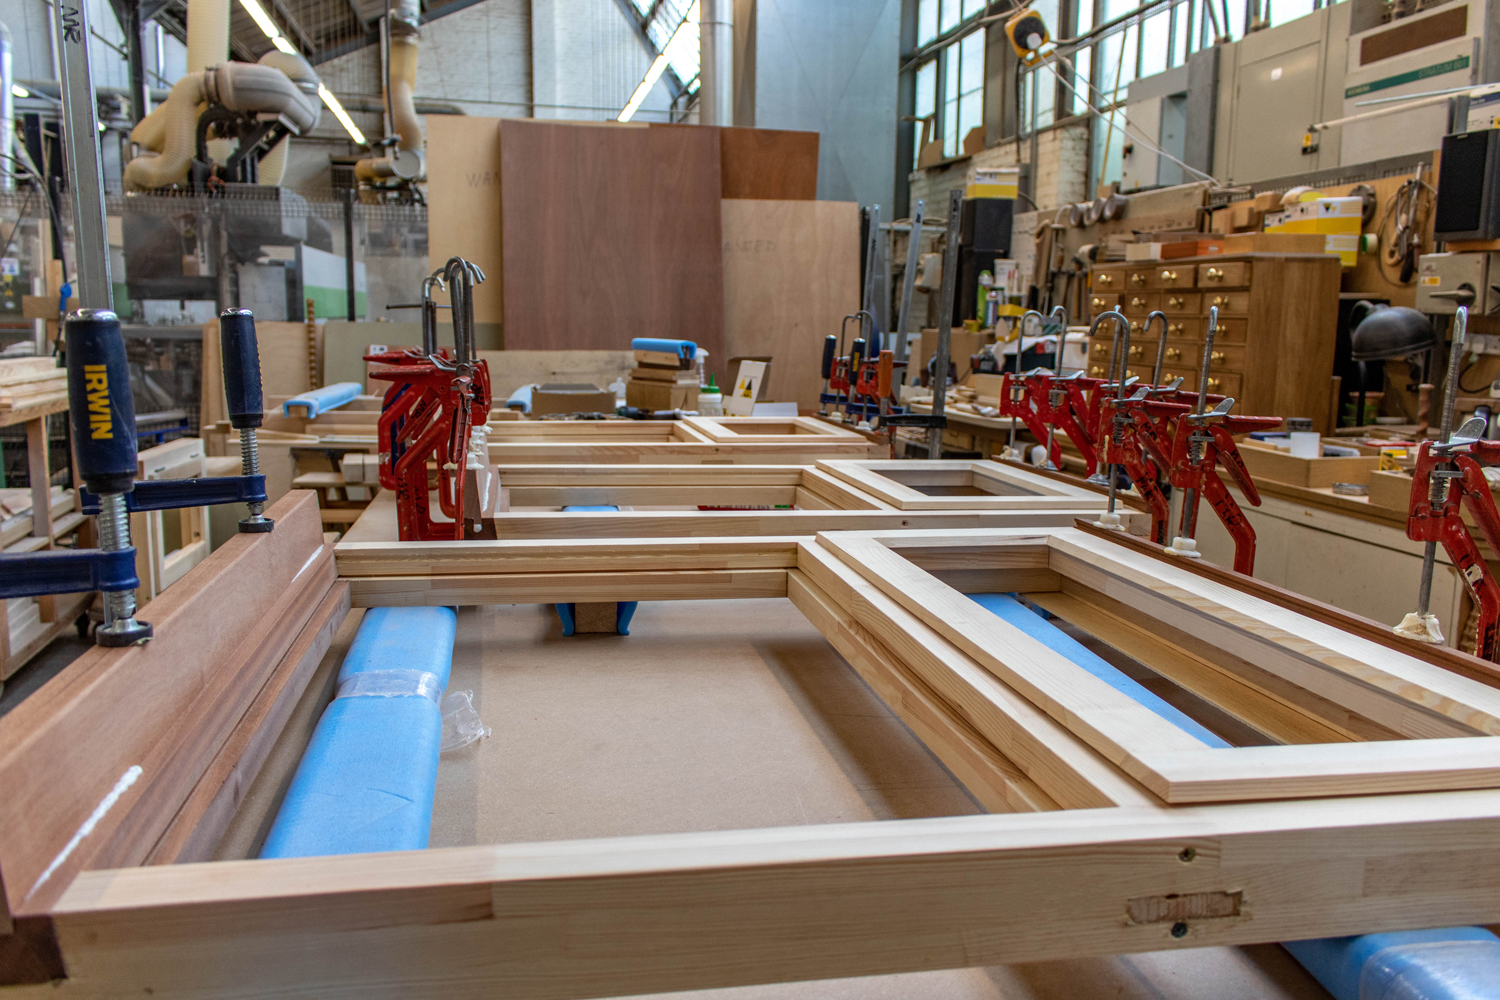 k&d wood joinery in workshop